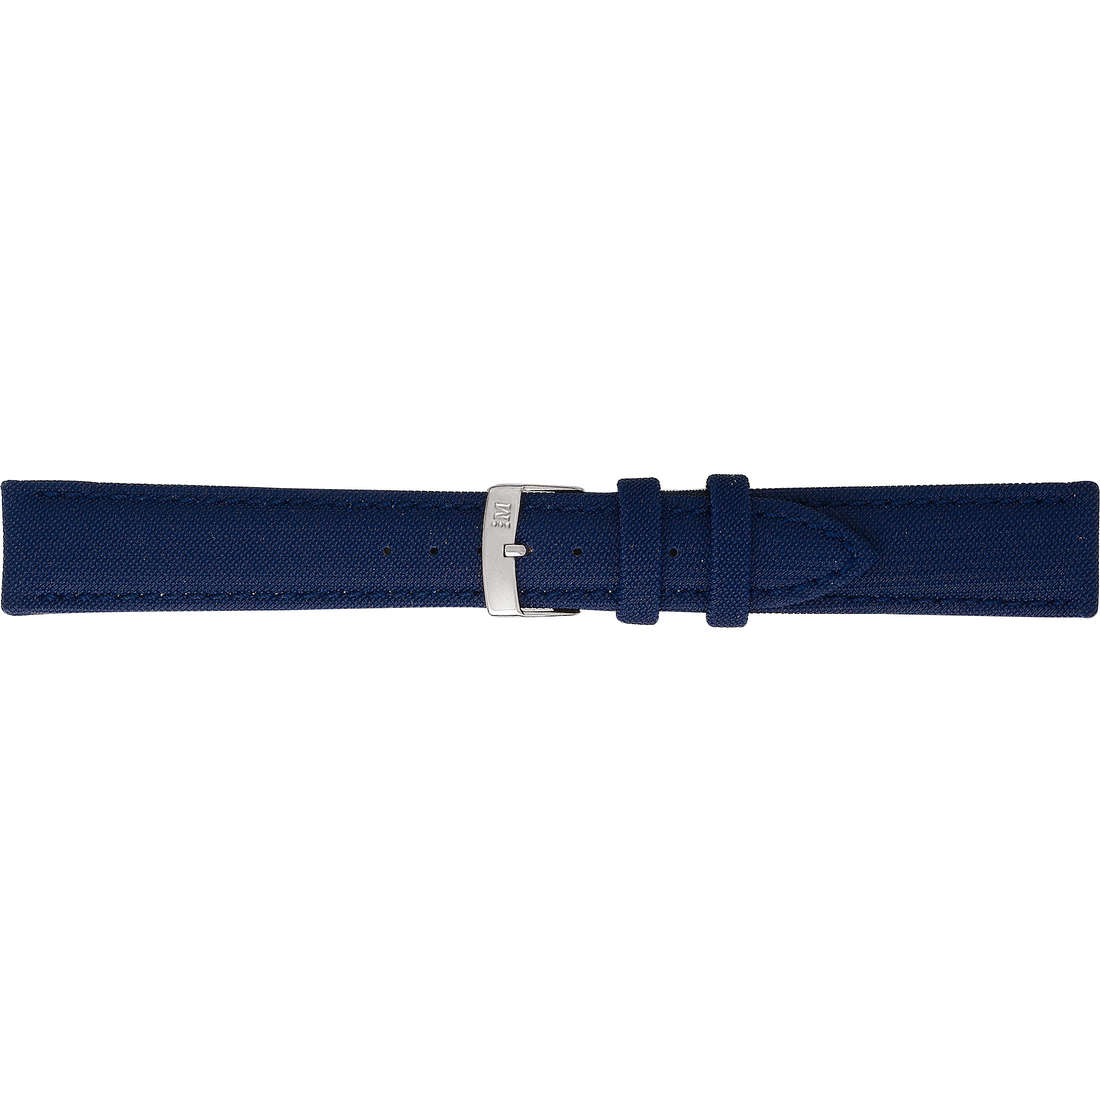 watch watch bands watch straps man Morellato Linea Sport A01X2778841062CR16